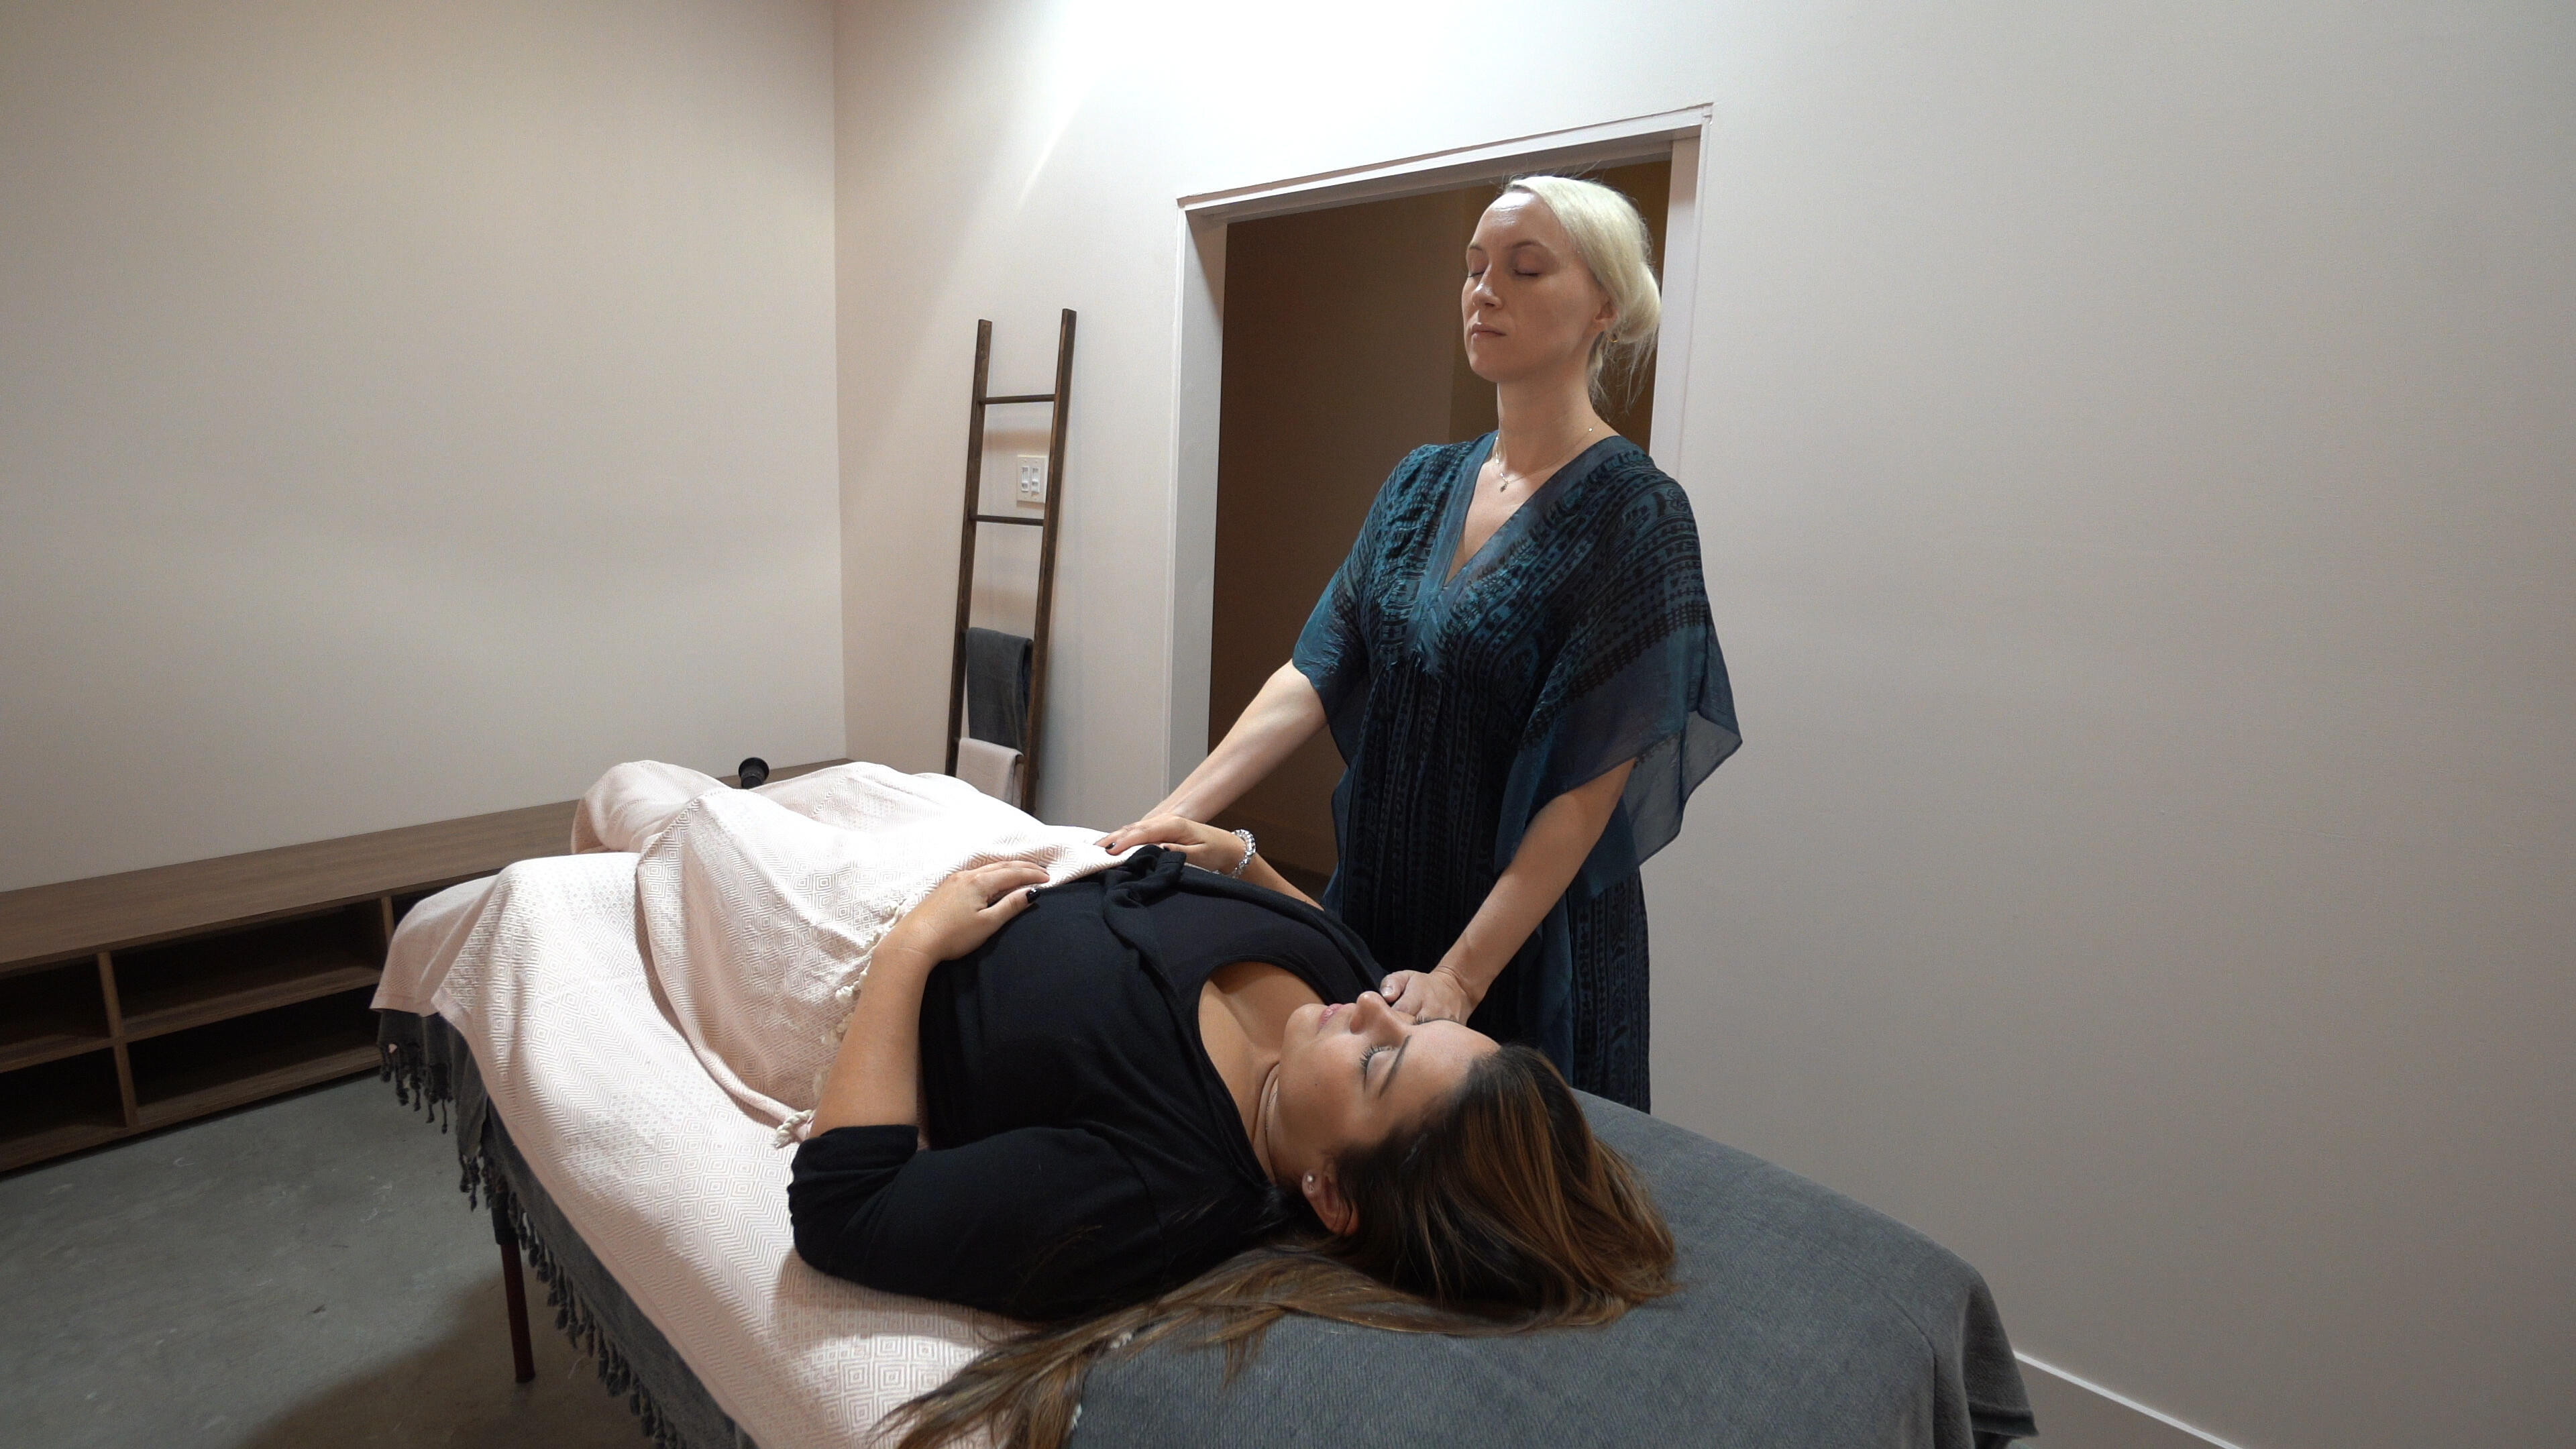 Sisanie & Tanya Rad Try Reiki and Guided Meditation to Recharge: Watch